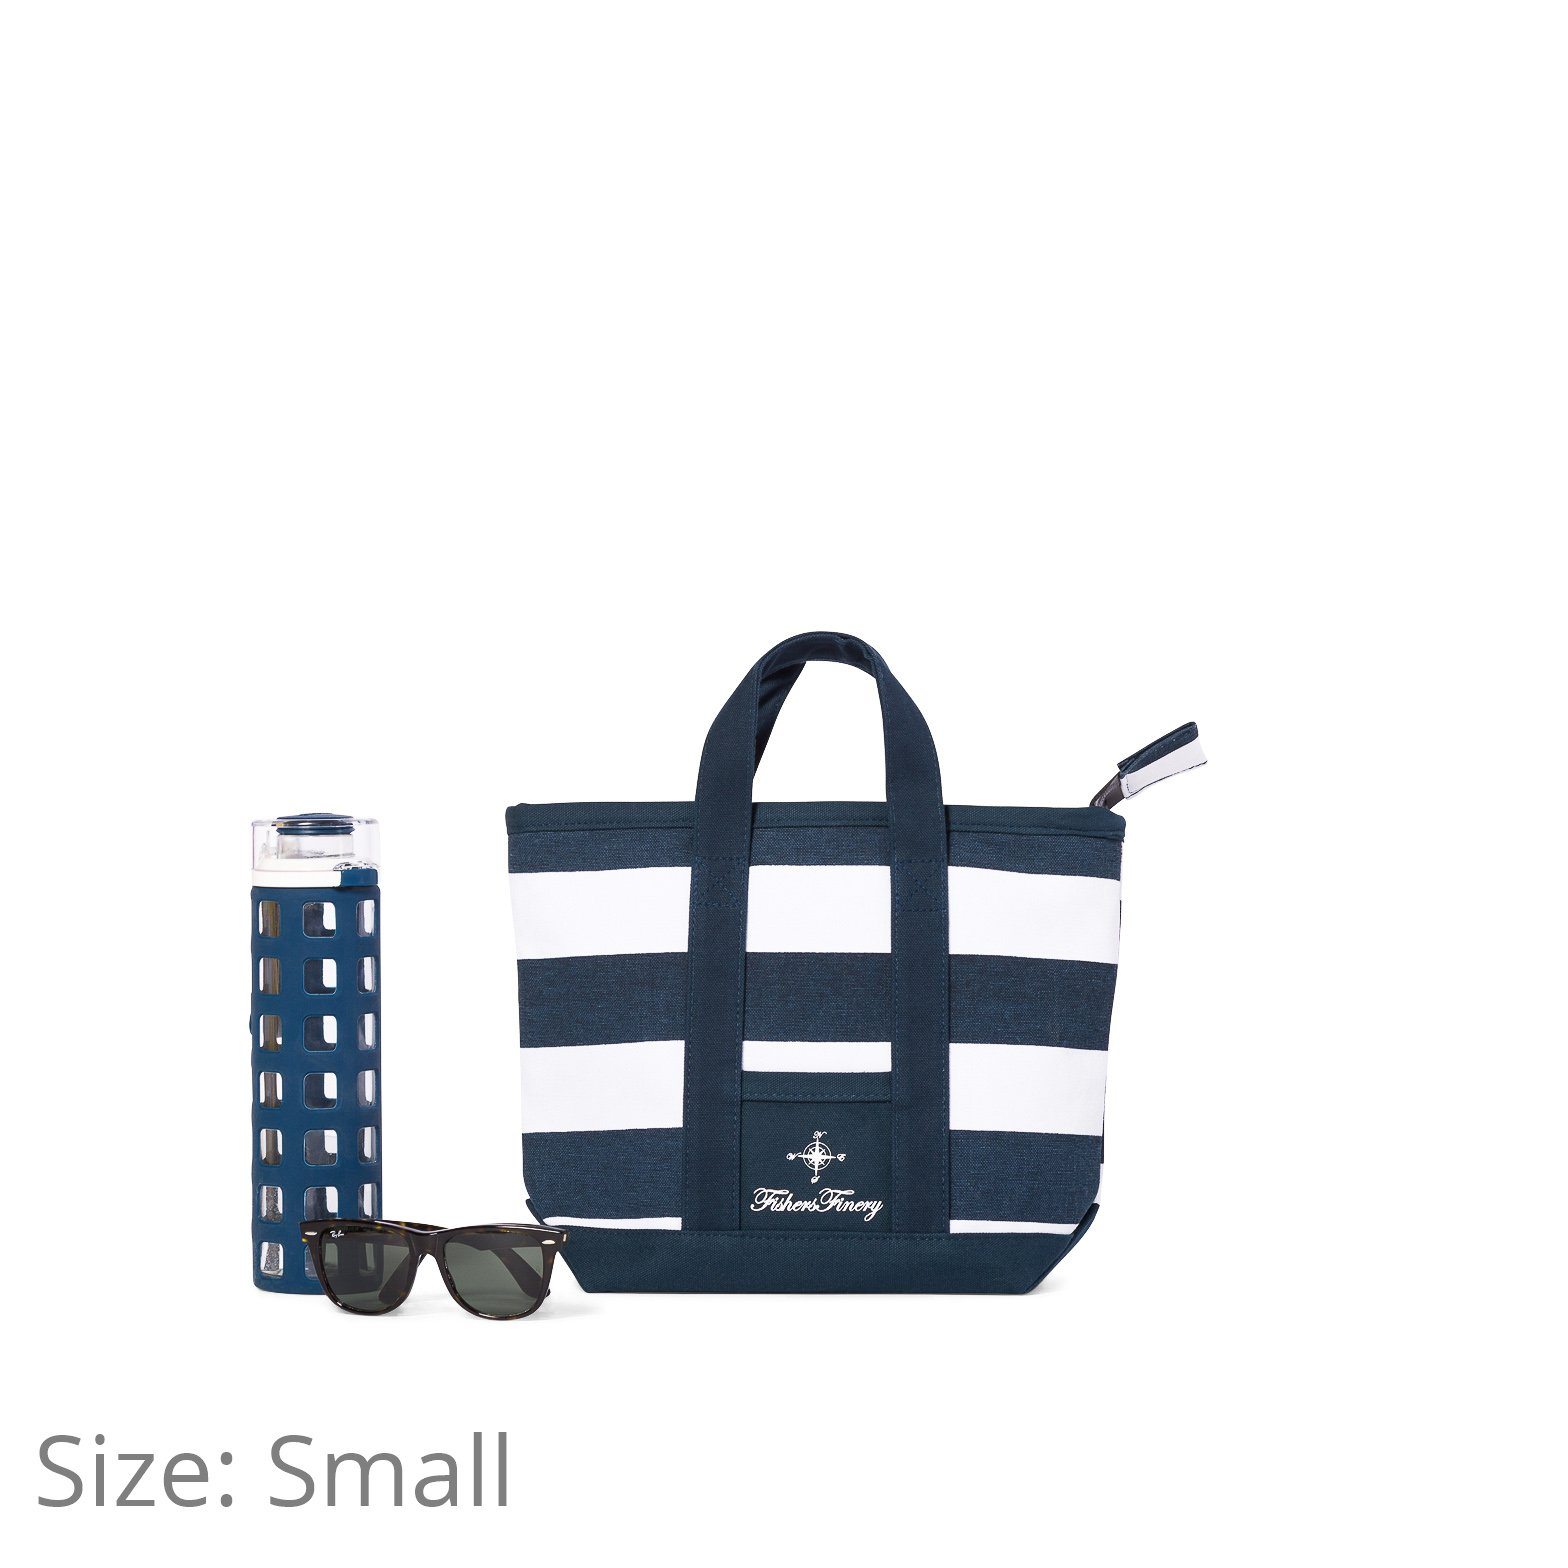 Fishers Finery Canvas Tote with Zipper and Lining with interior Pockets; Multi Sizes and Colors (Navy, S) by Fishers Finery (Image #6)